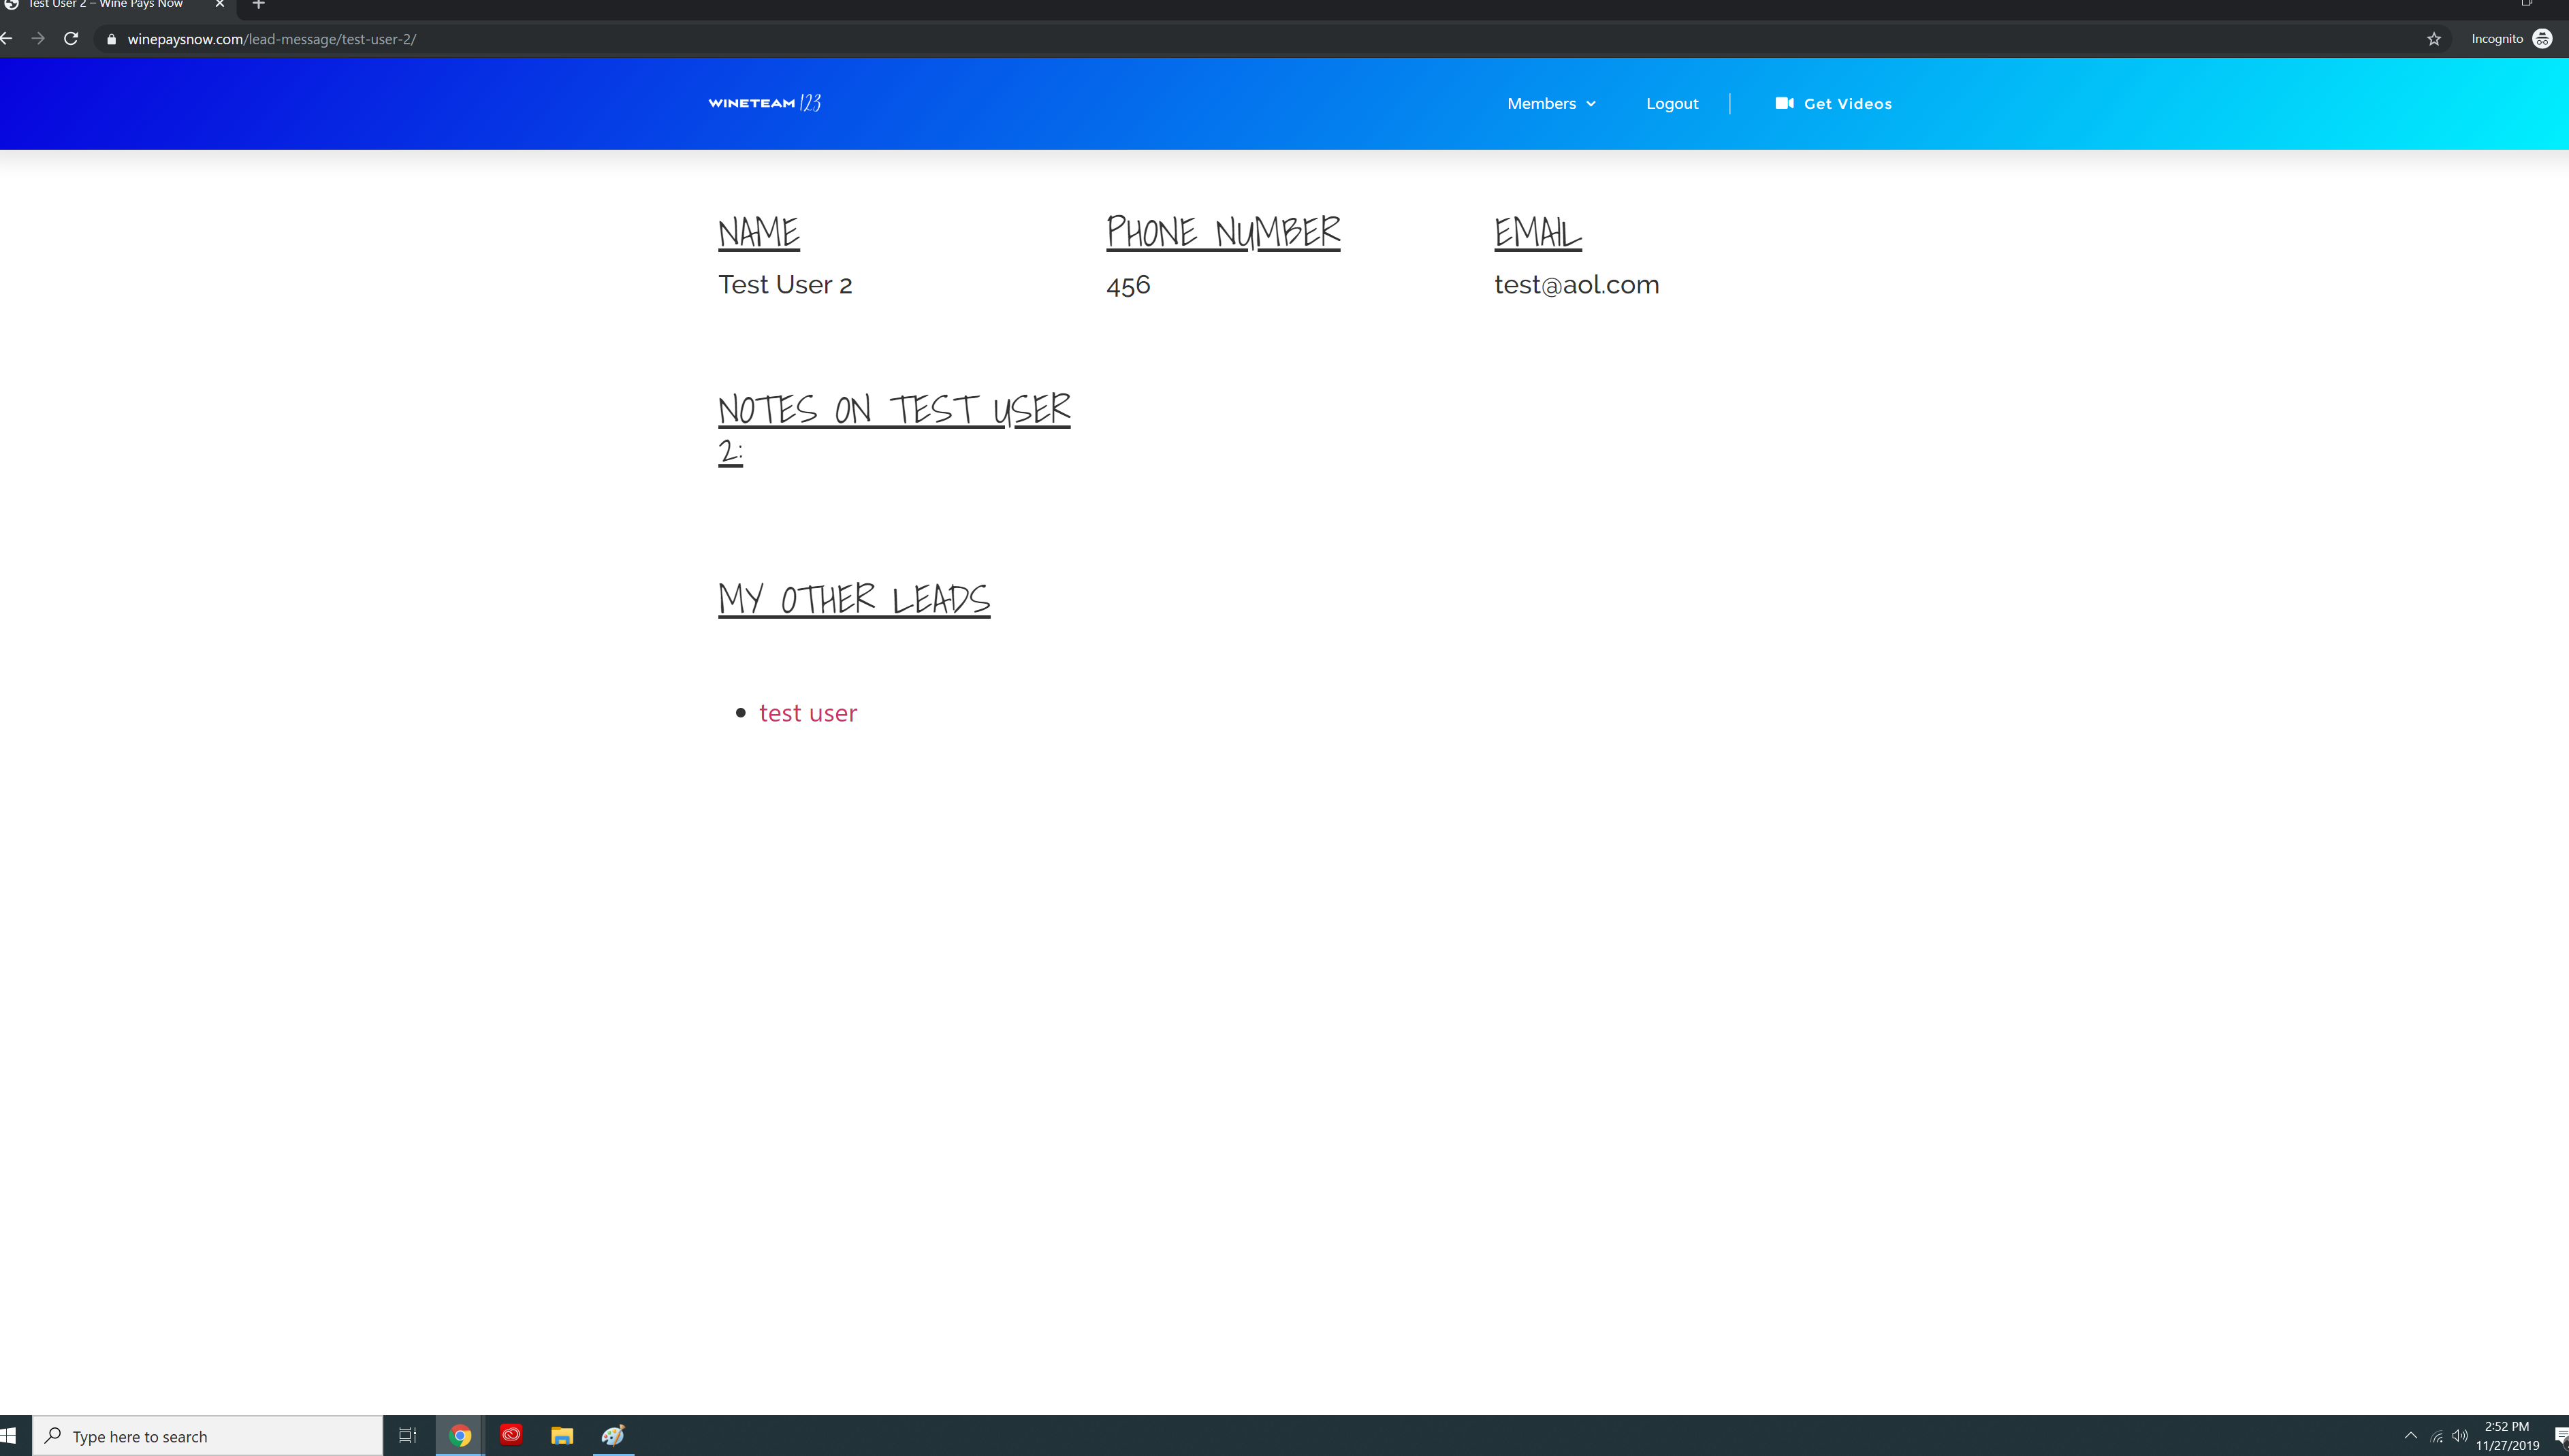 lead form created while user was - NOT logged in when form submitted.png